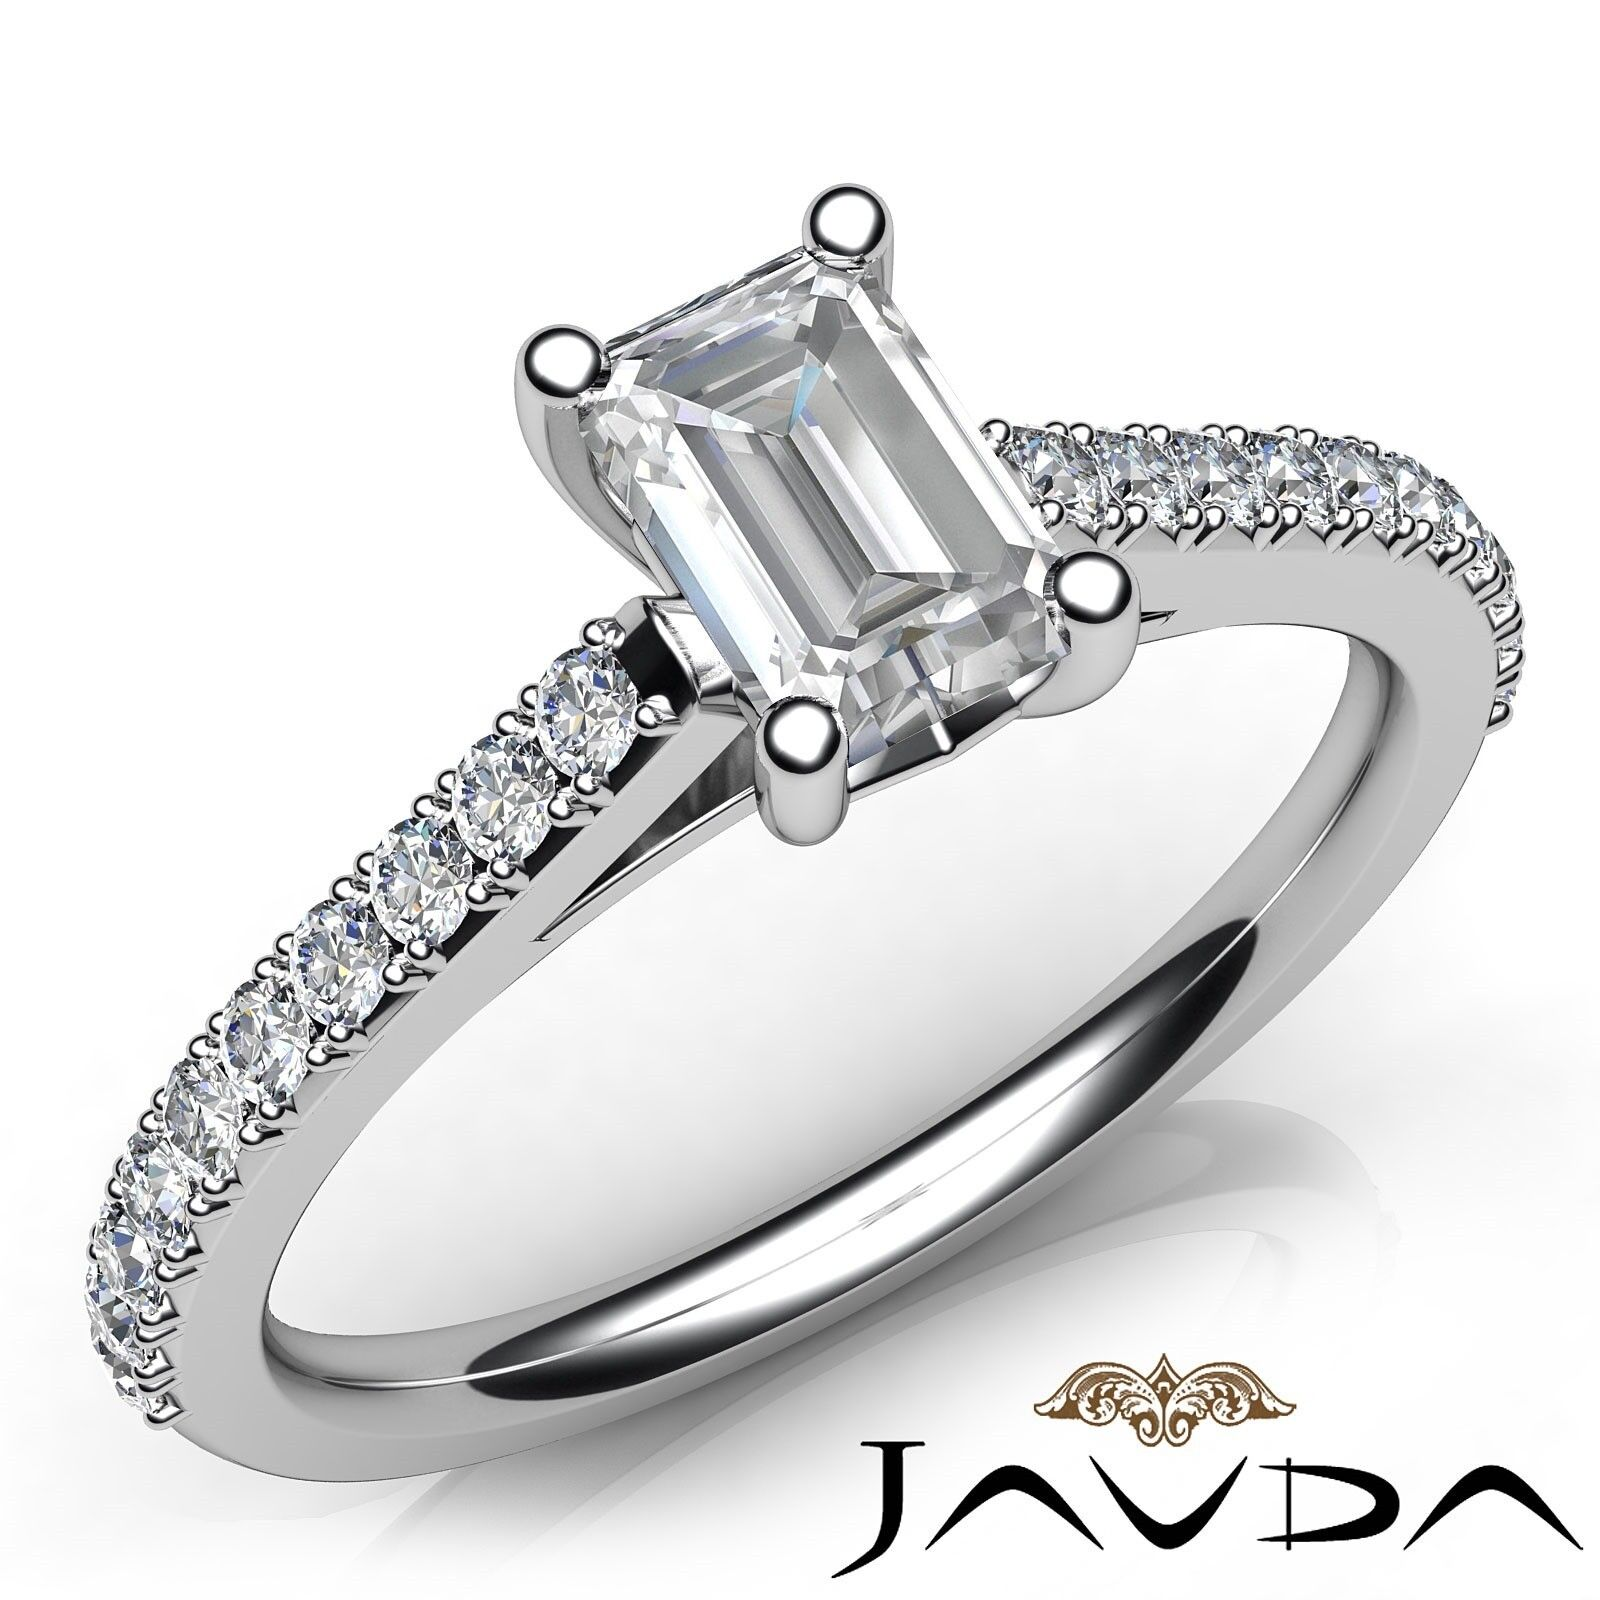 0.82ctw Classic Prong Set Emerald Diamond Engagement Ring GIA G-VVS2 White Gold